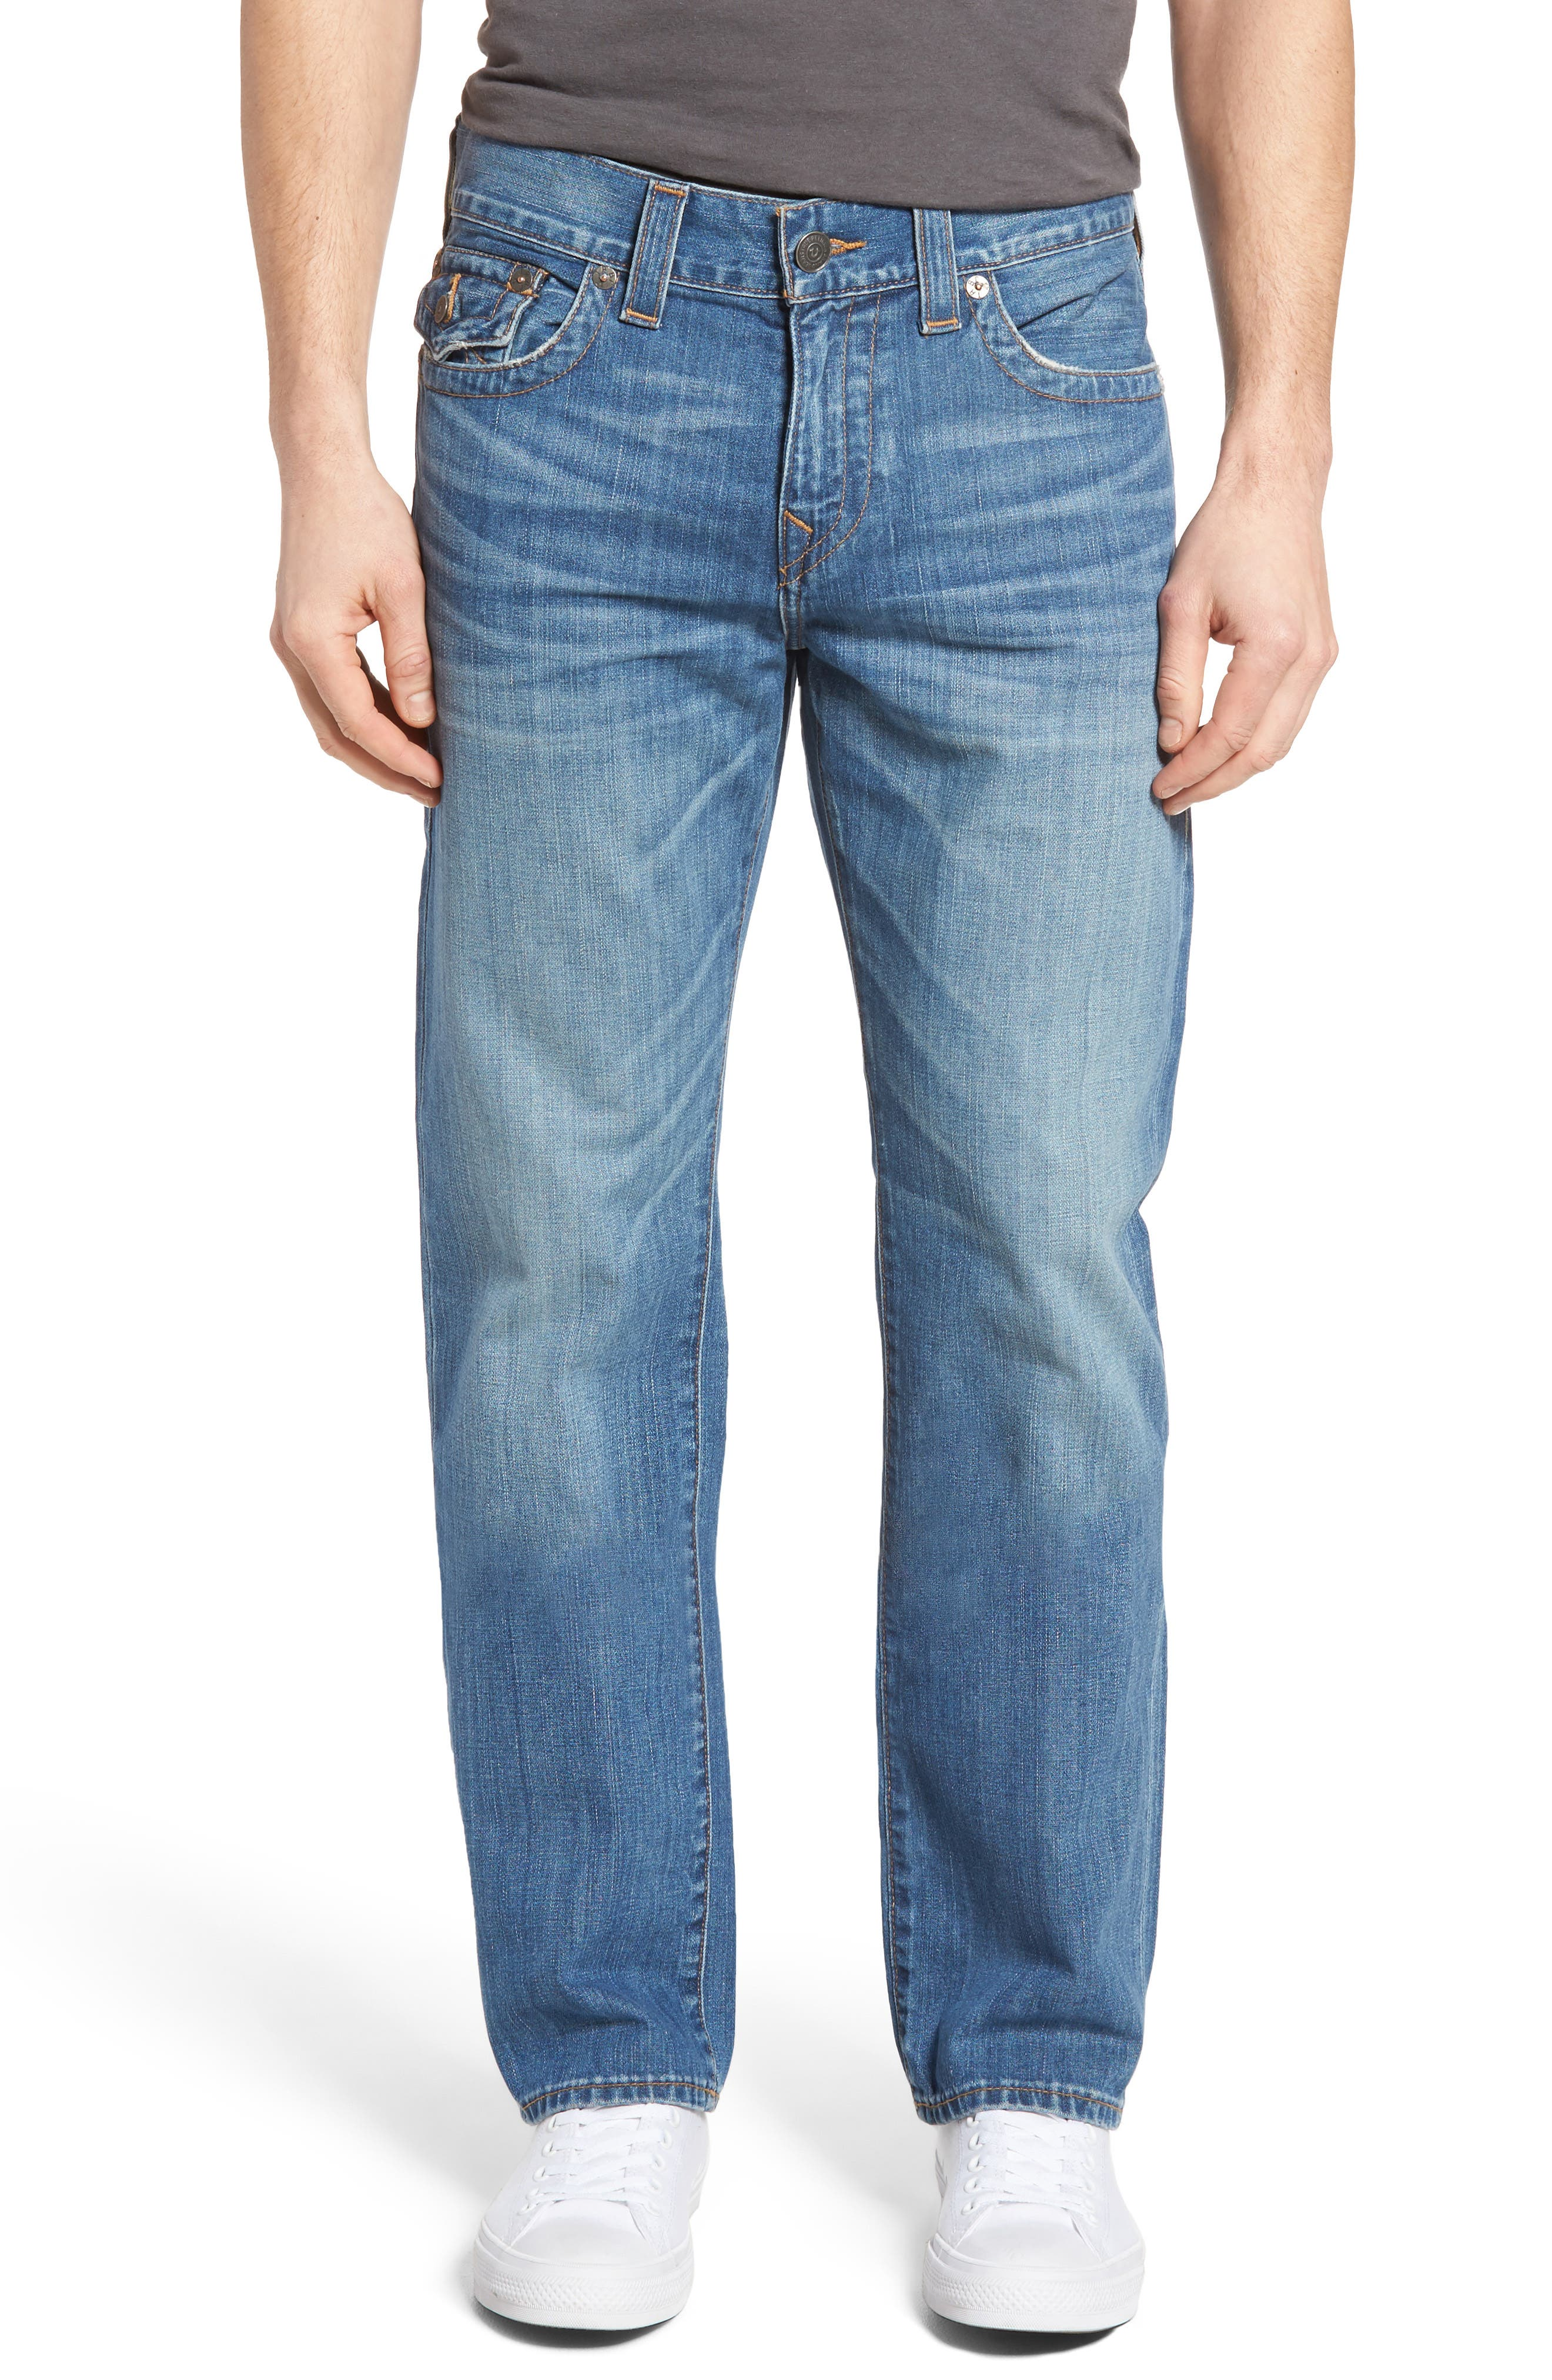 Ricky Relaxed Fit Jeans,                         Main,                         color, 403